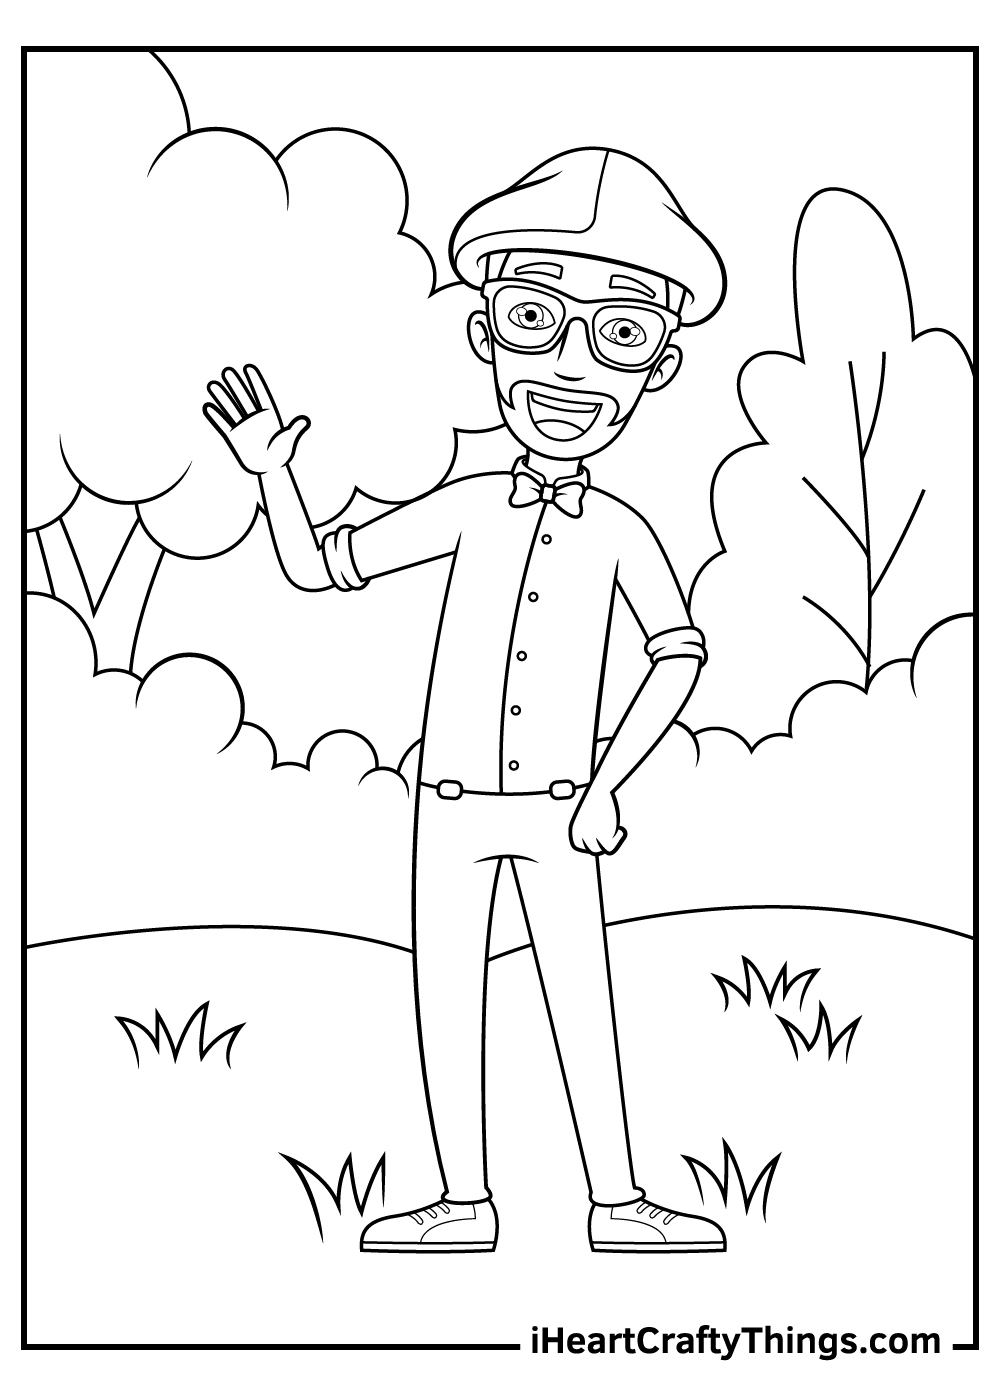 blippi black and white coloring pages